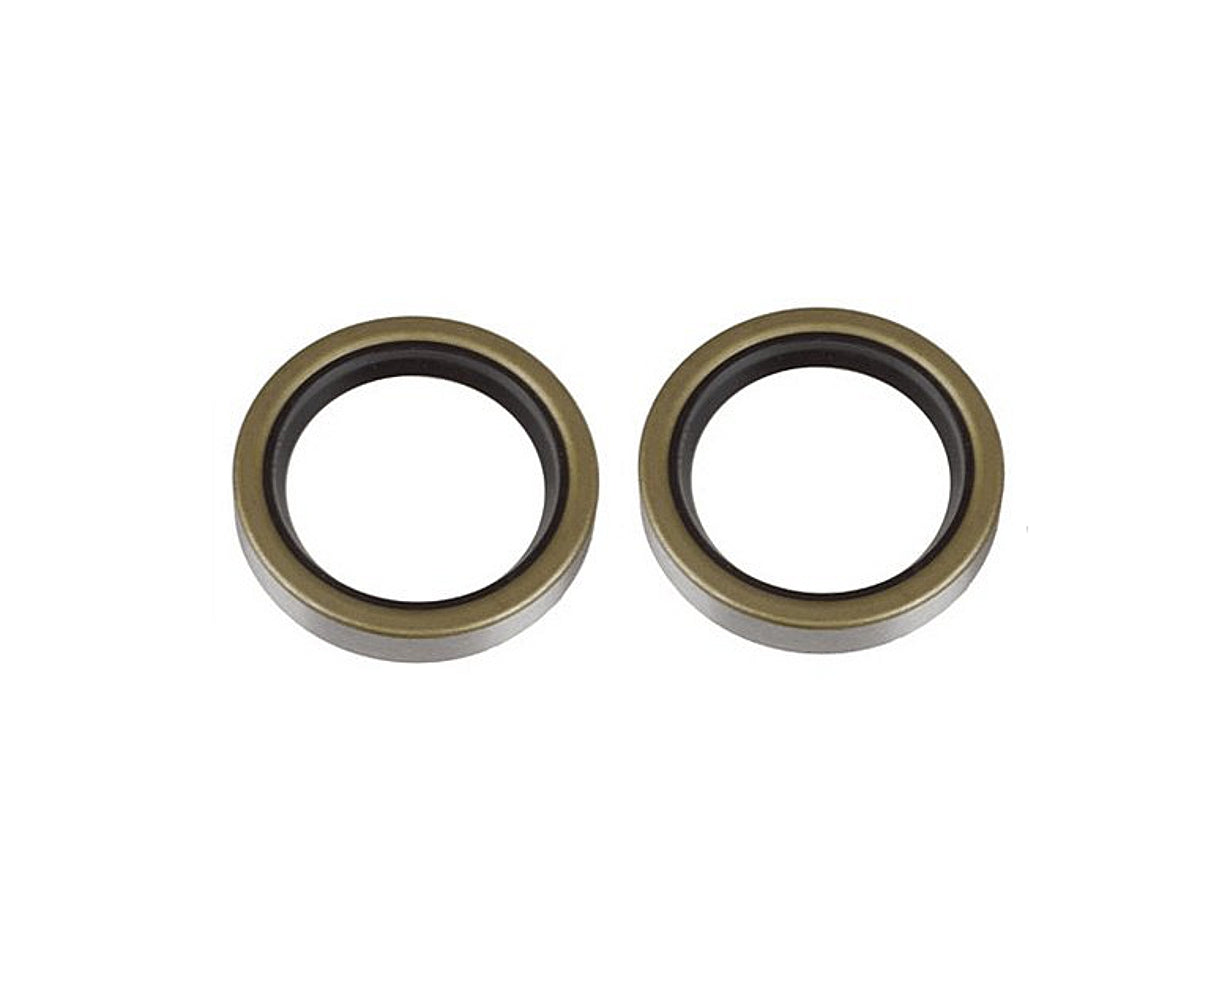 Set of TWO Ford Rear Axle Seals - A-D5NN4115A